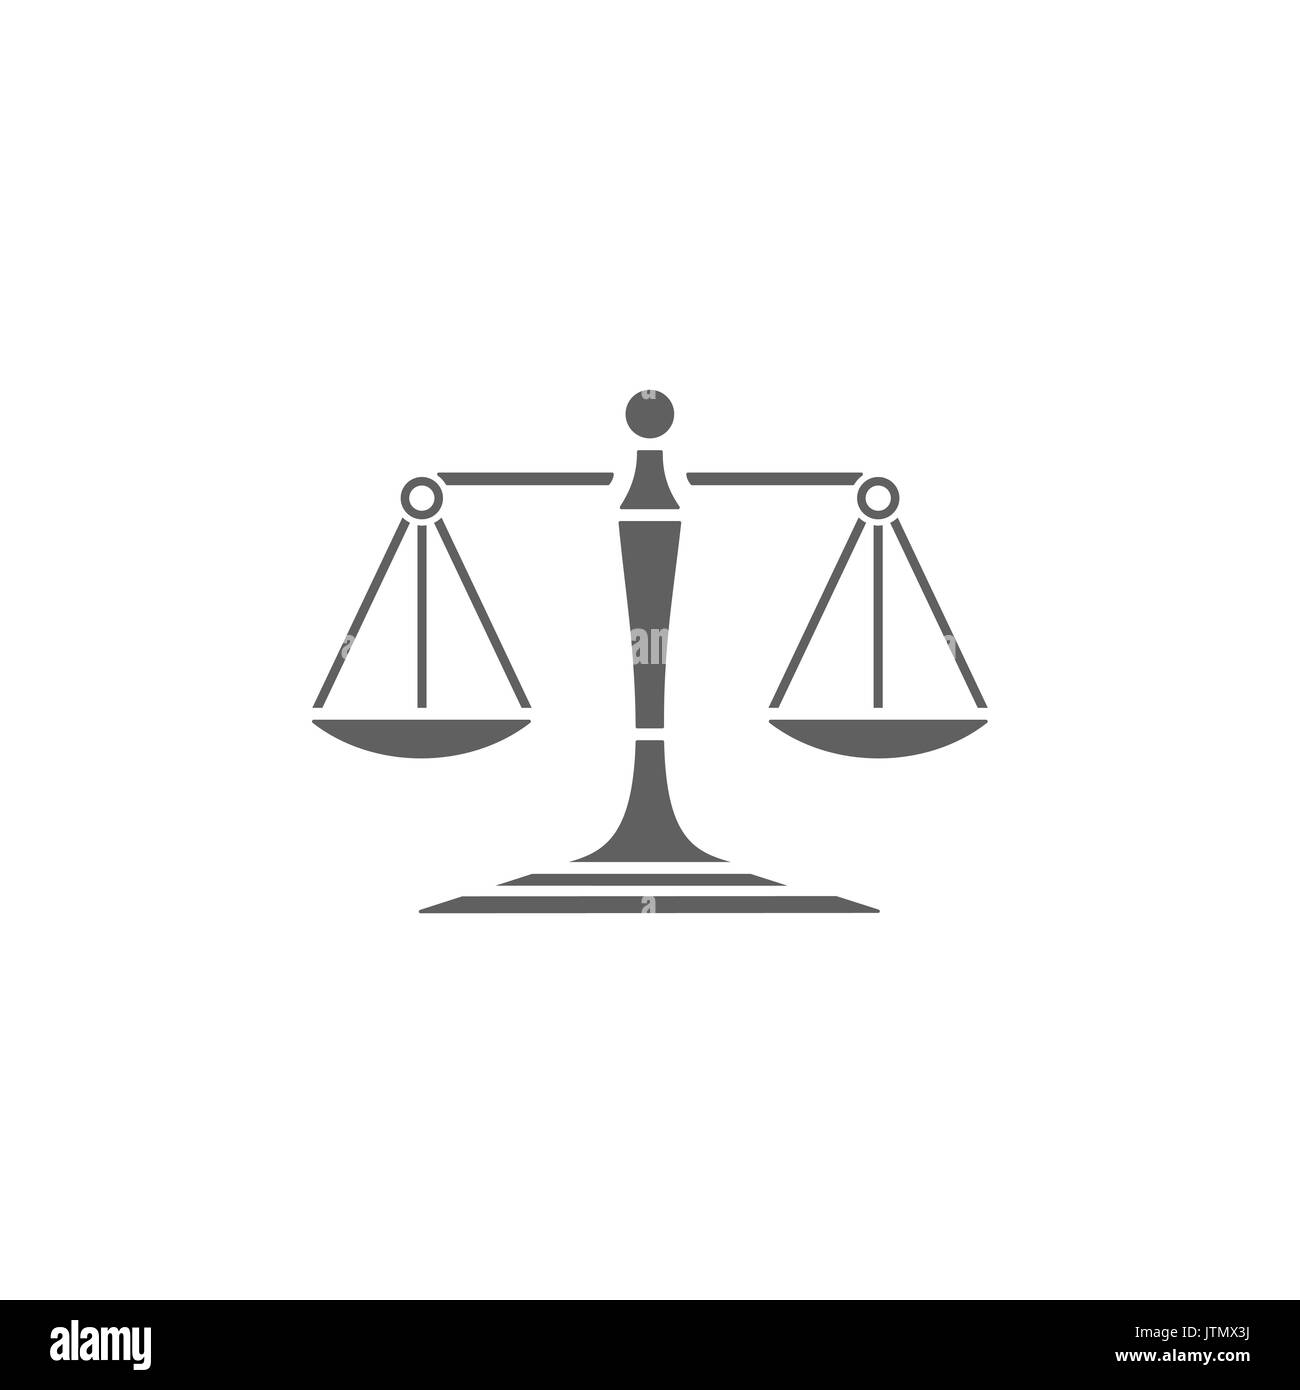 Scales of justice icon on a white background - Stock Image